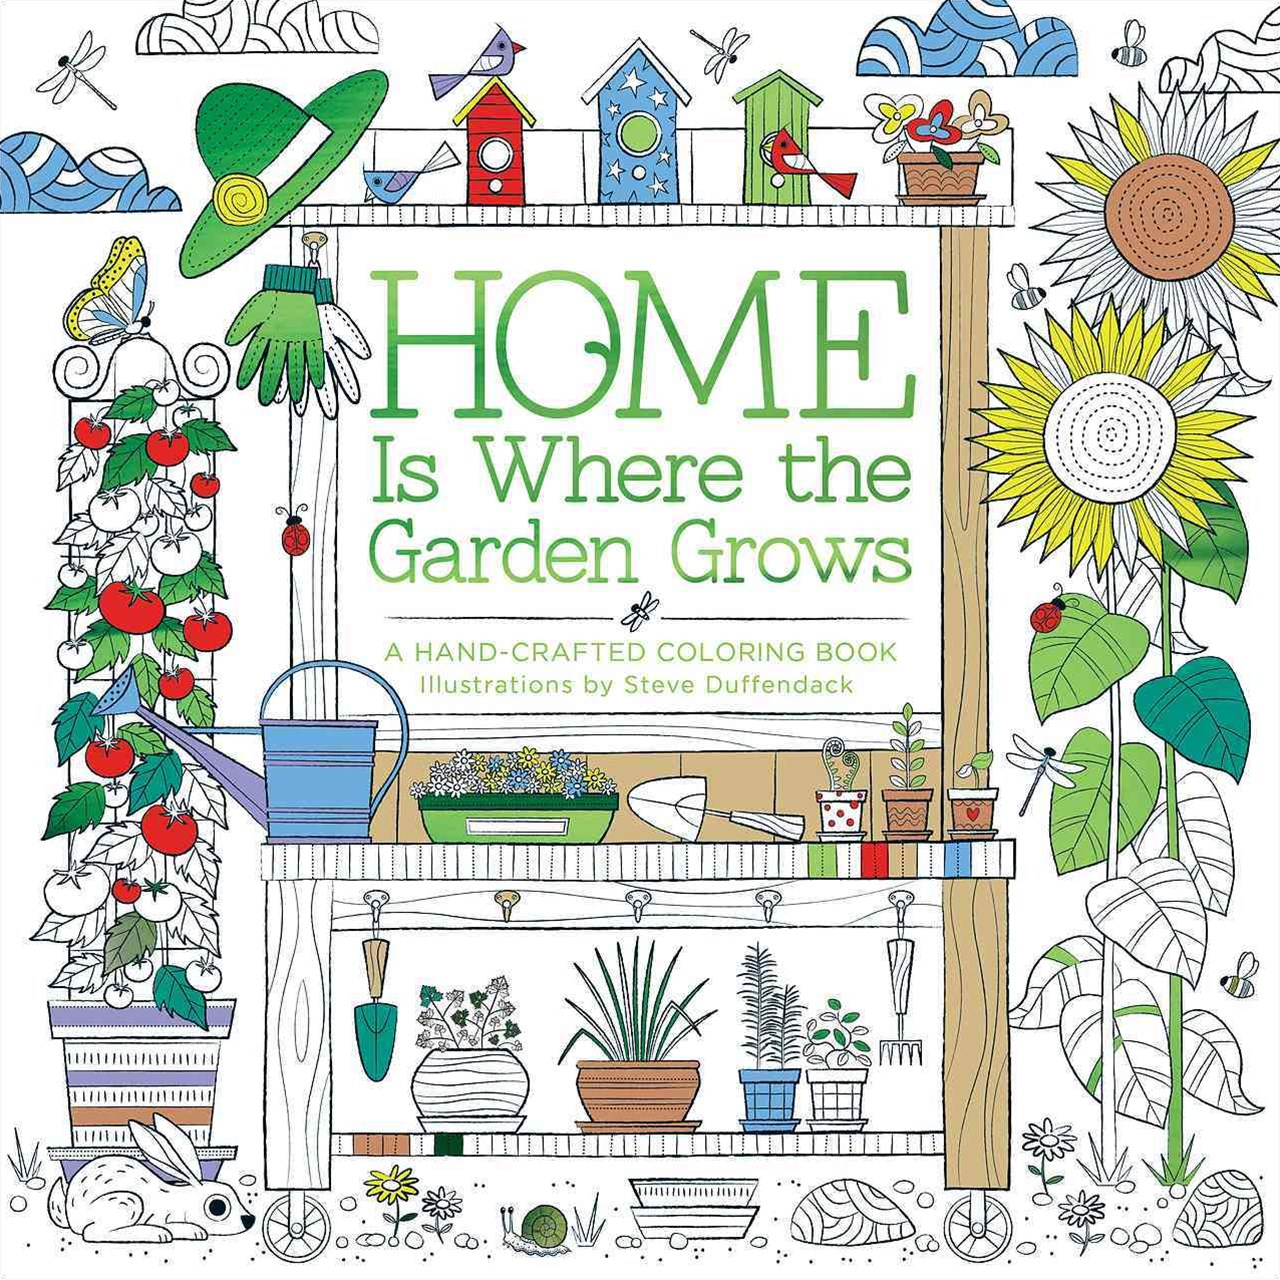 Home is Where the Garden Grows